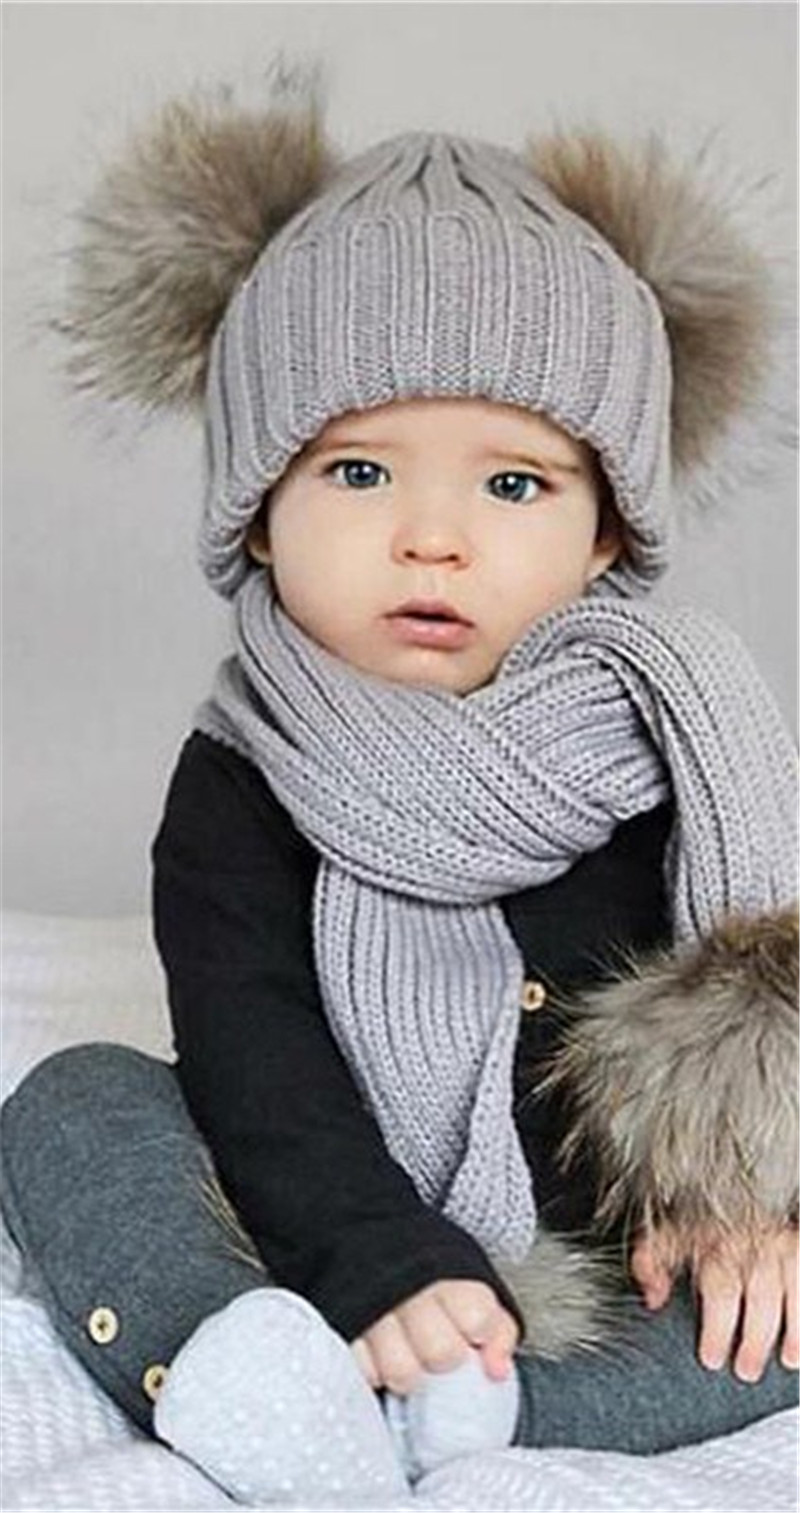 Cute Baby Newborn Infant Warm Winter Scarf Caps Sets Boys Girls Knitted Beanie Hat Crochet Stretch Patchwork Skullies Scarf Cap